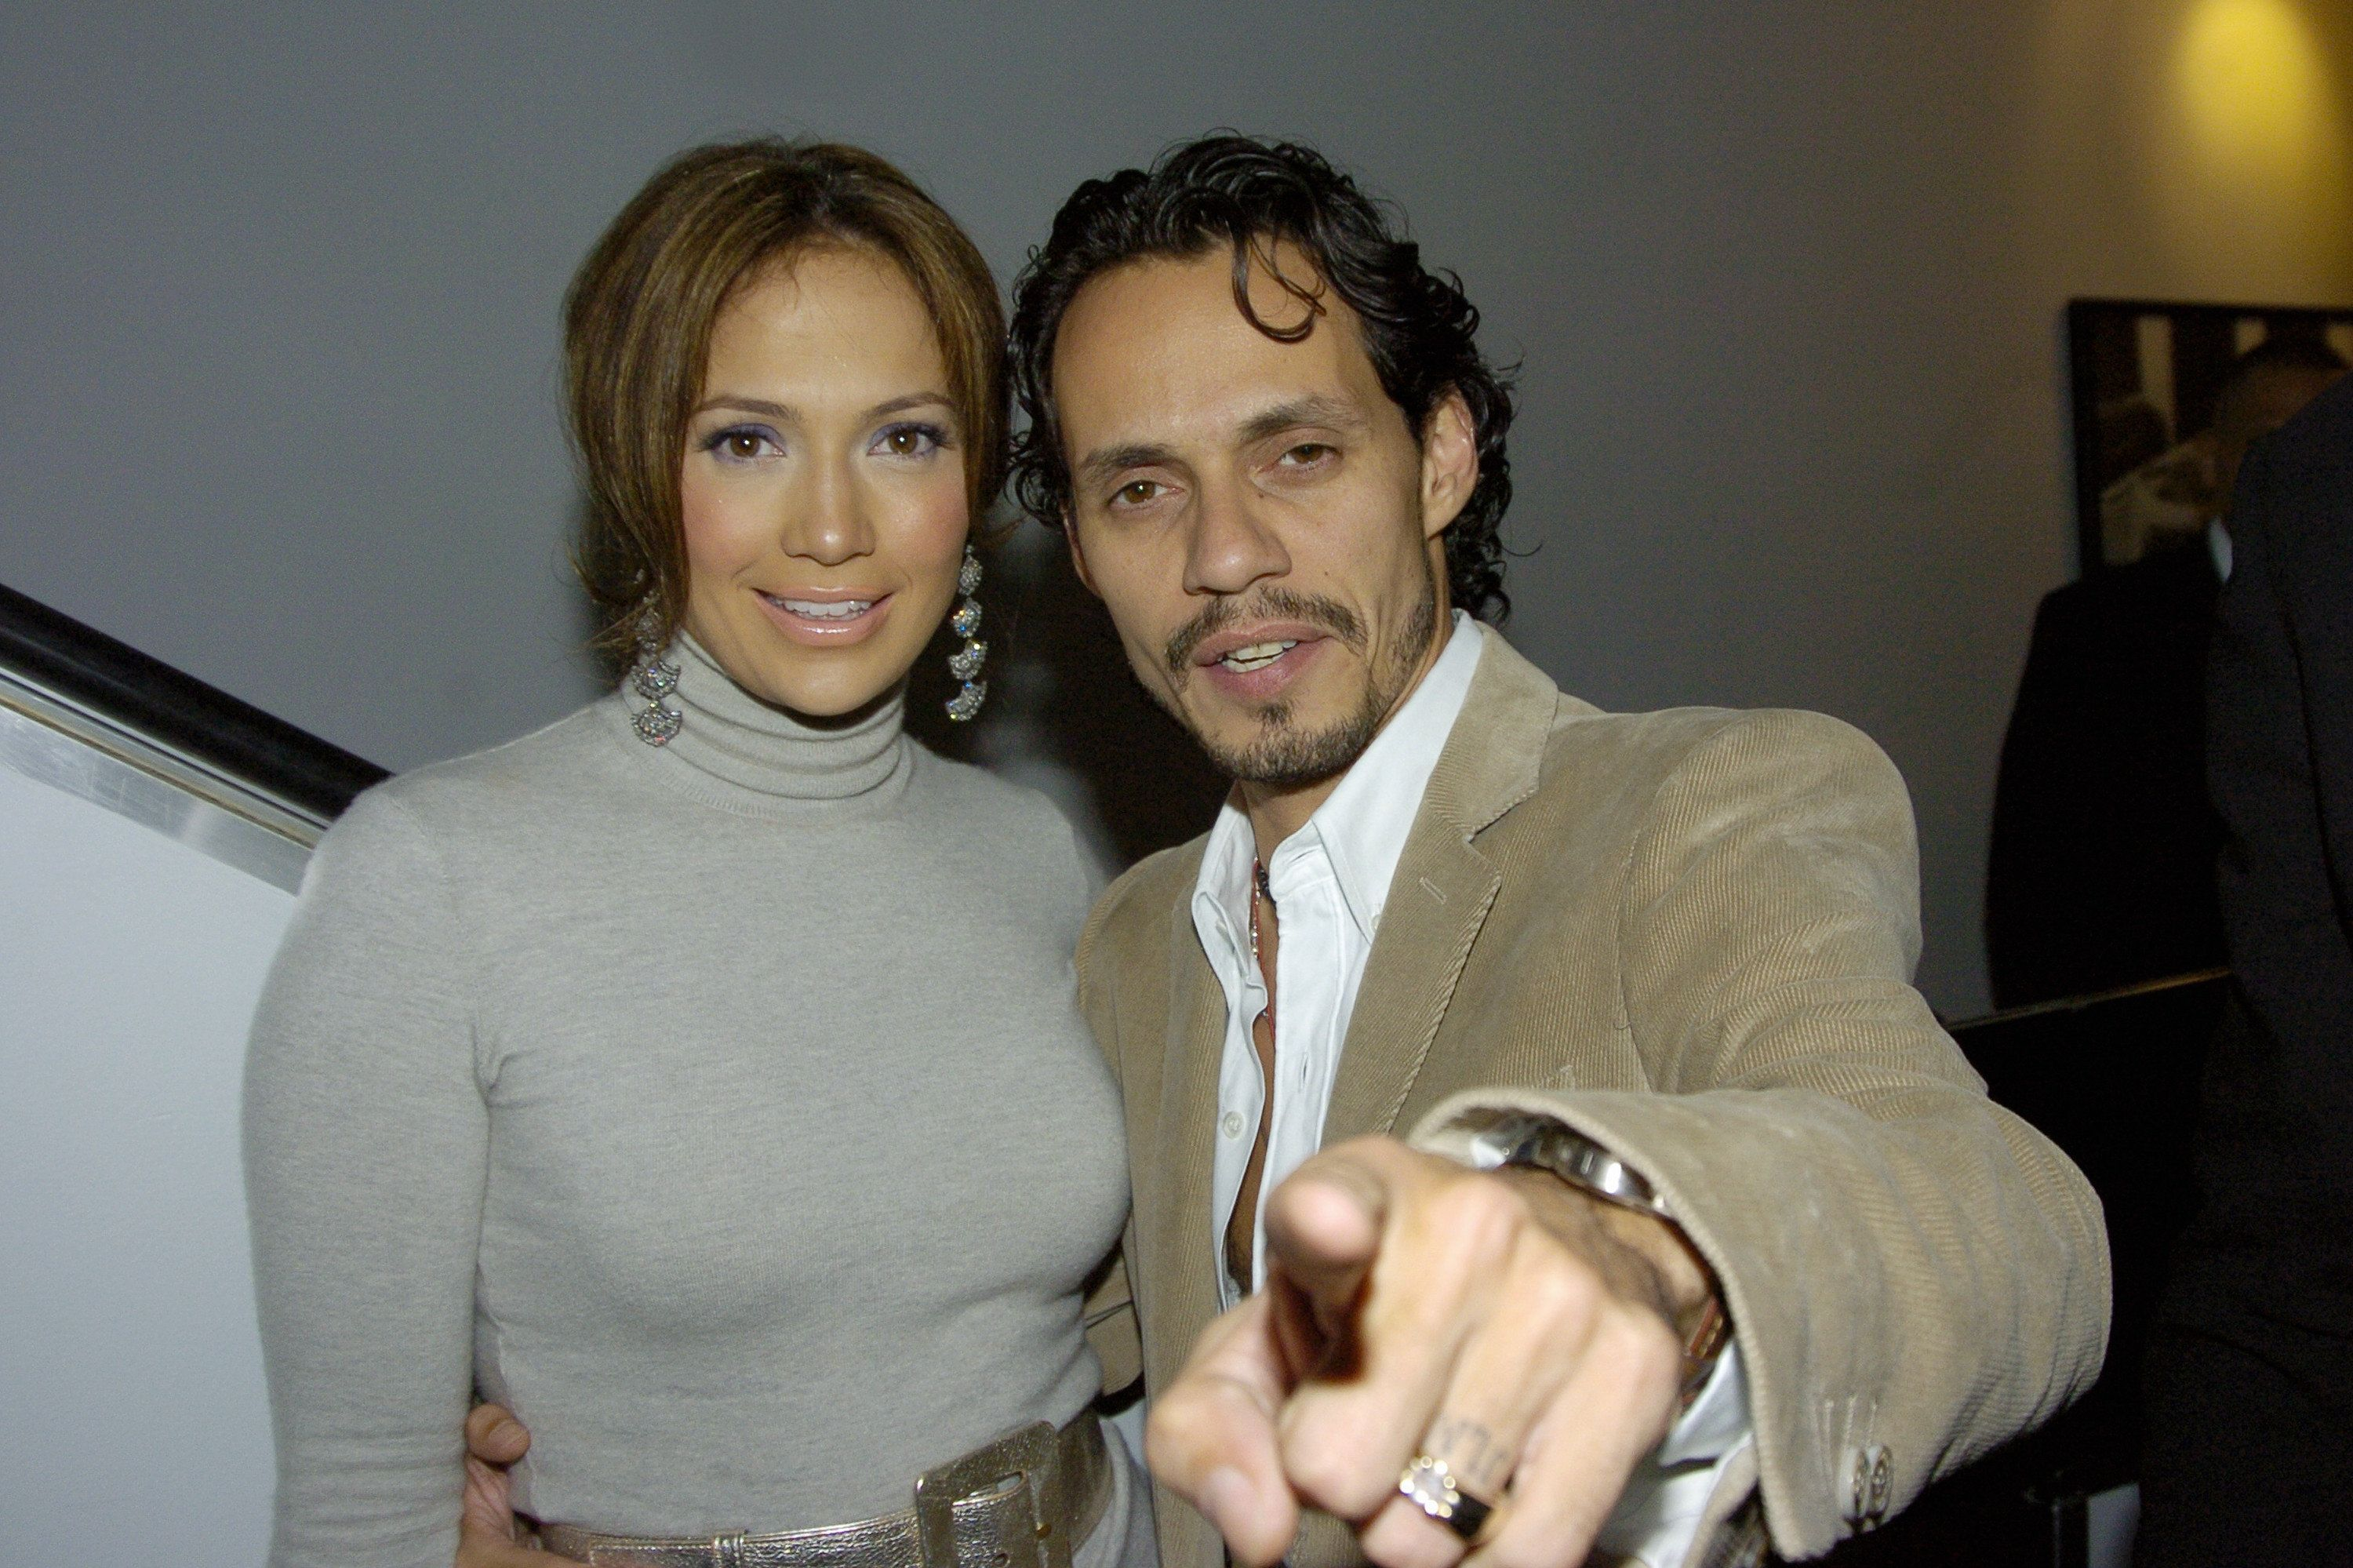 UNITED STATES - CIRCA 2002:  Jennifer Lopez and husband Marc Anthony are on hand for the premiere of 'An Unfinished Life' at the Directors Guild of America Theatre on W. 57th St. She stars in the film.  (Photo by Richard Corkery/NY Daily News Archive via Getty Images)